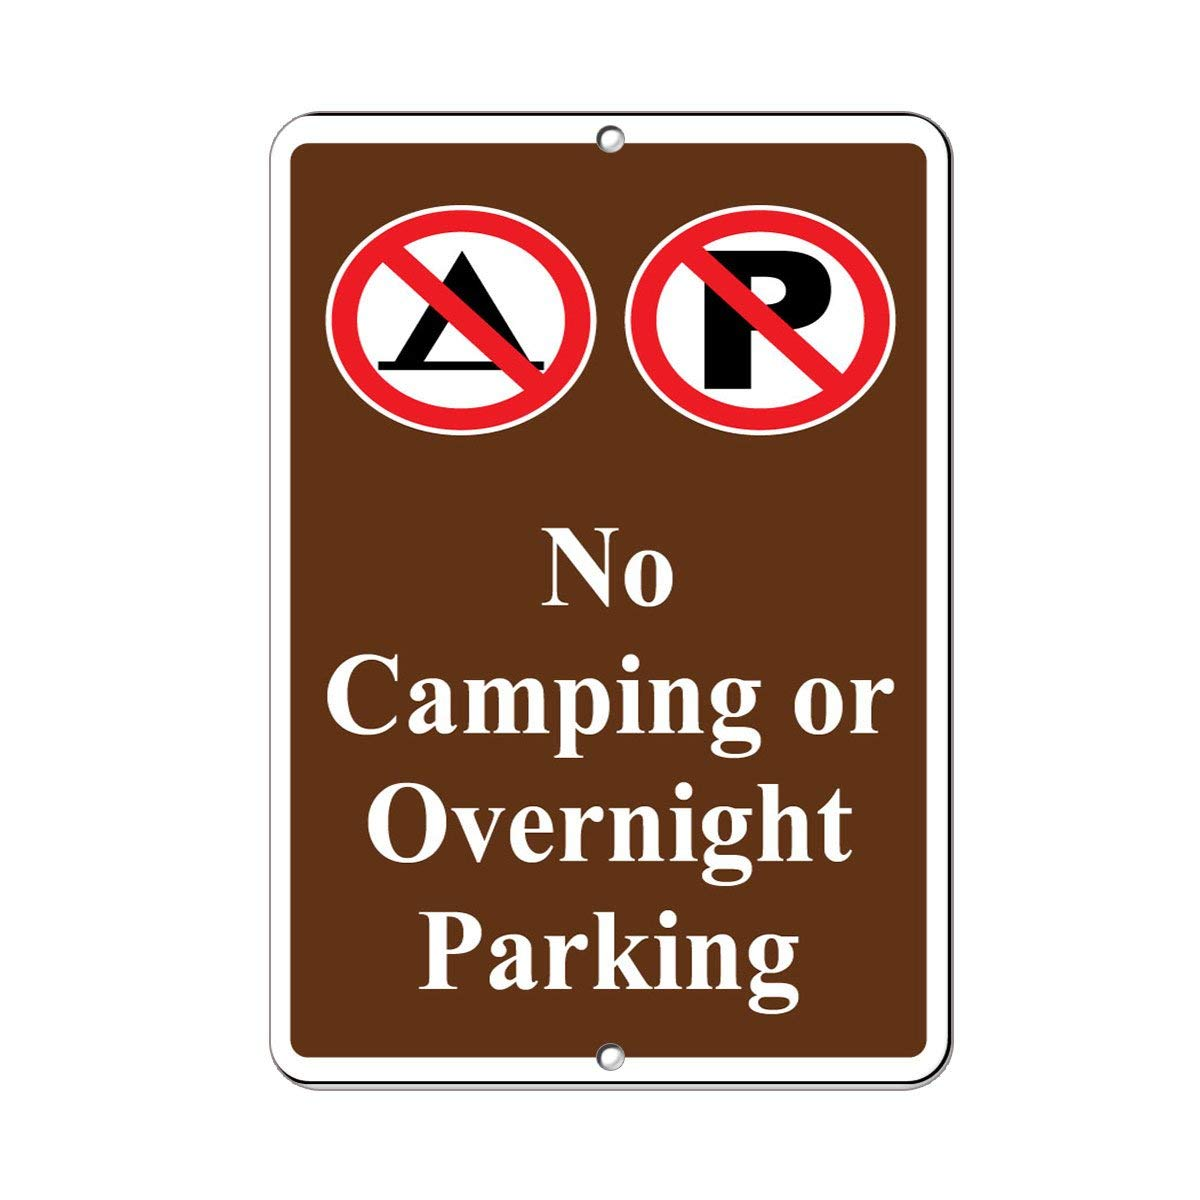 Fhdang Decor No Camping Or Overnight Parking Parking Sign Aluminum METAL Sign,6x9 Inches